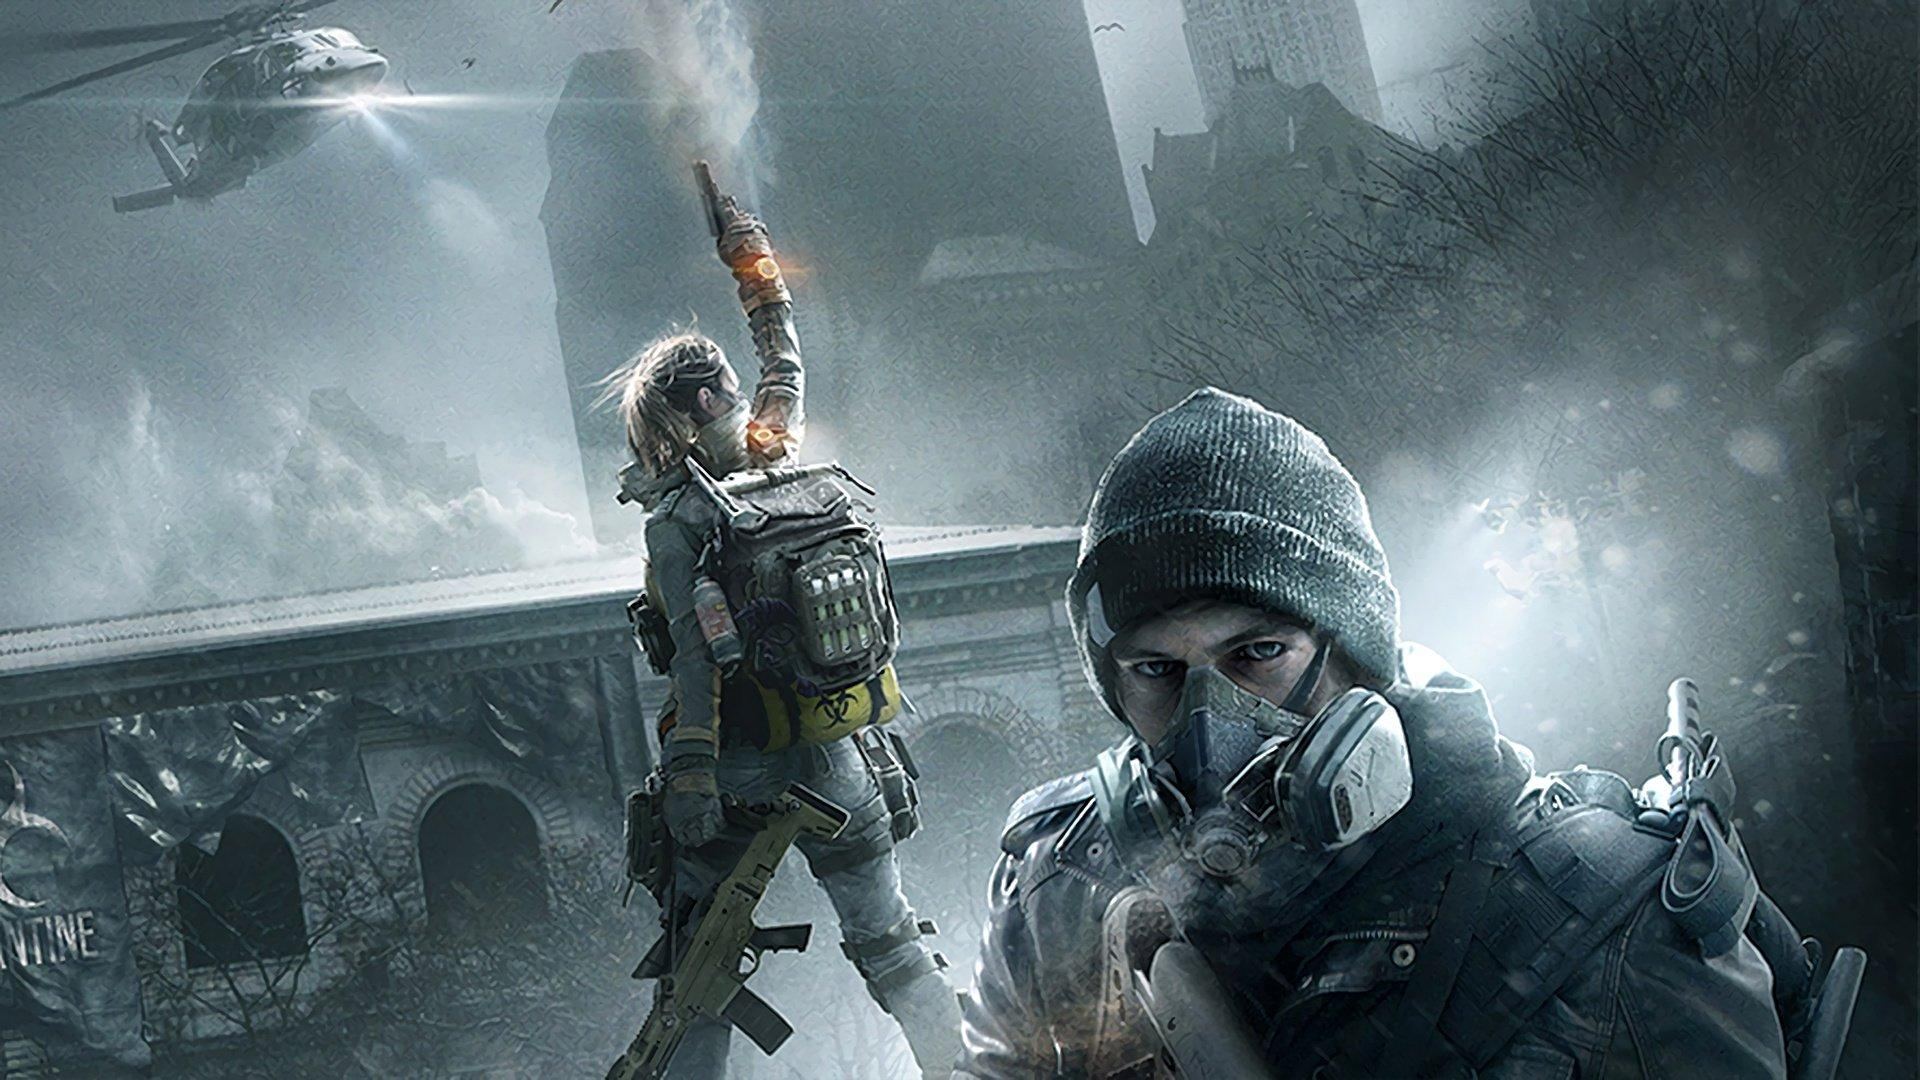 Tom Clancy's The Division 2 HD Wallpapers - Wallpaper Cave